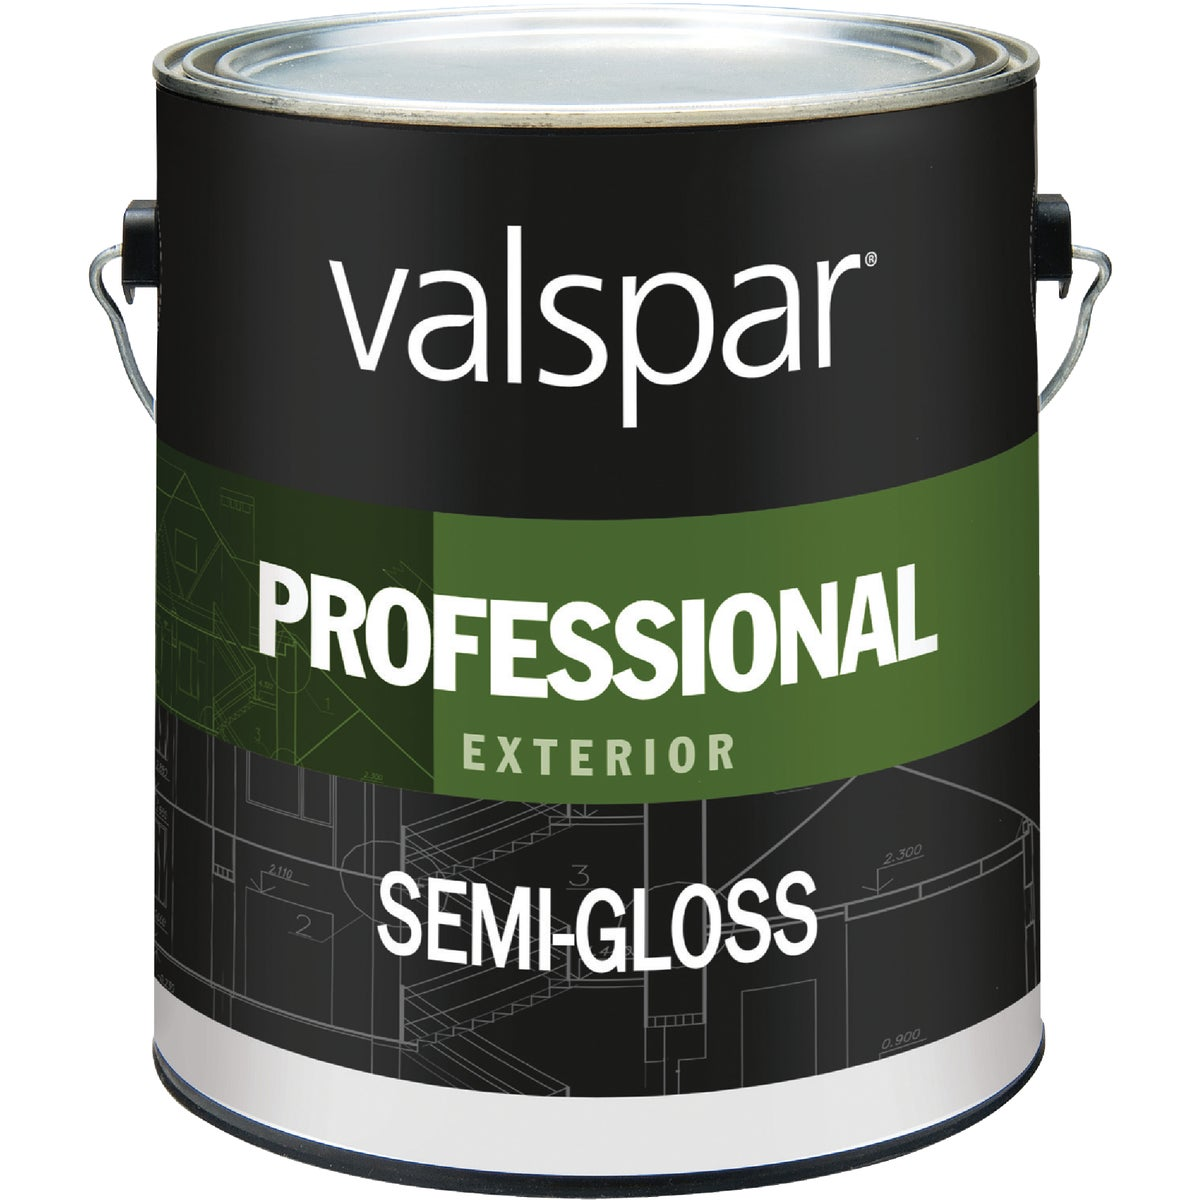 EXT S/G LIGHT BASE PAINT - 045.0012911.007 by Valspar Corp